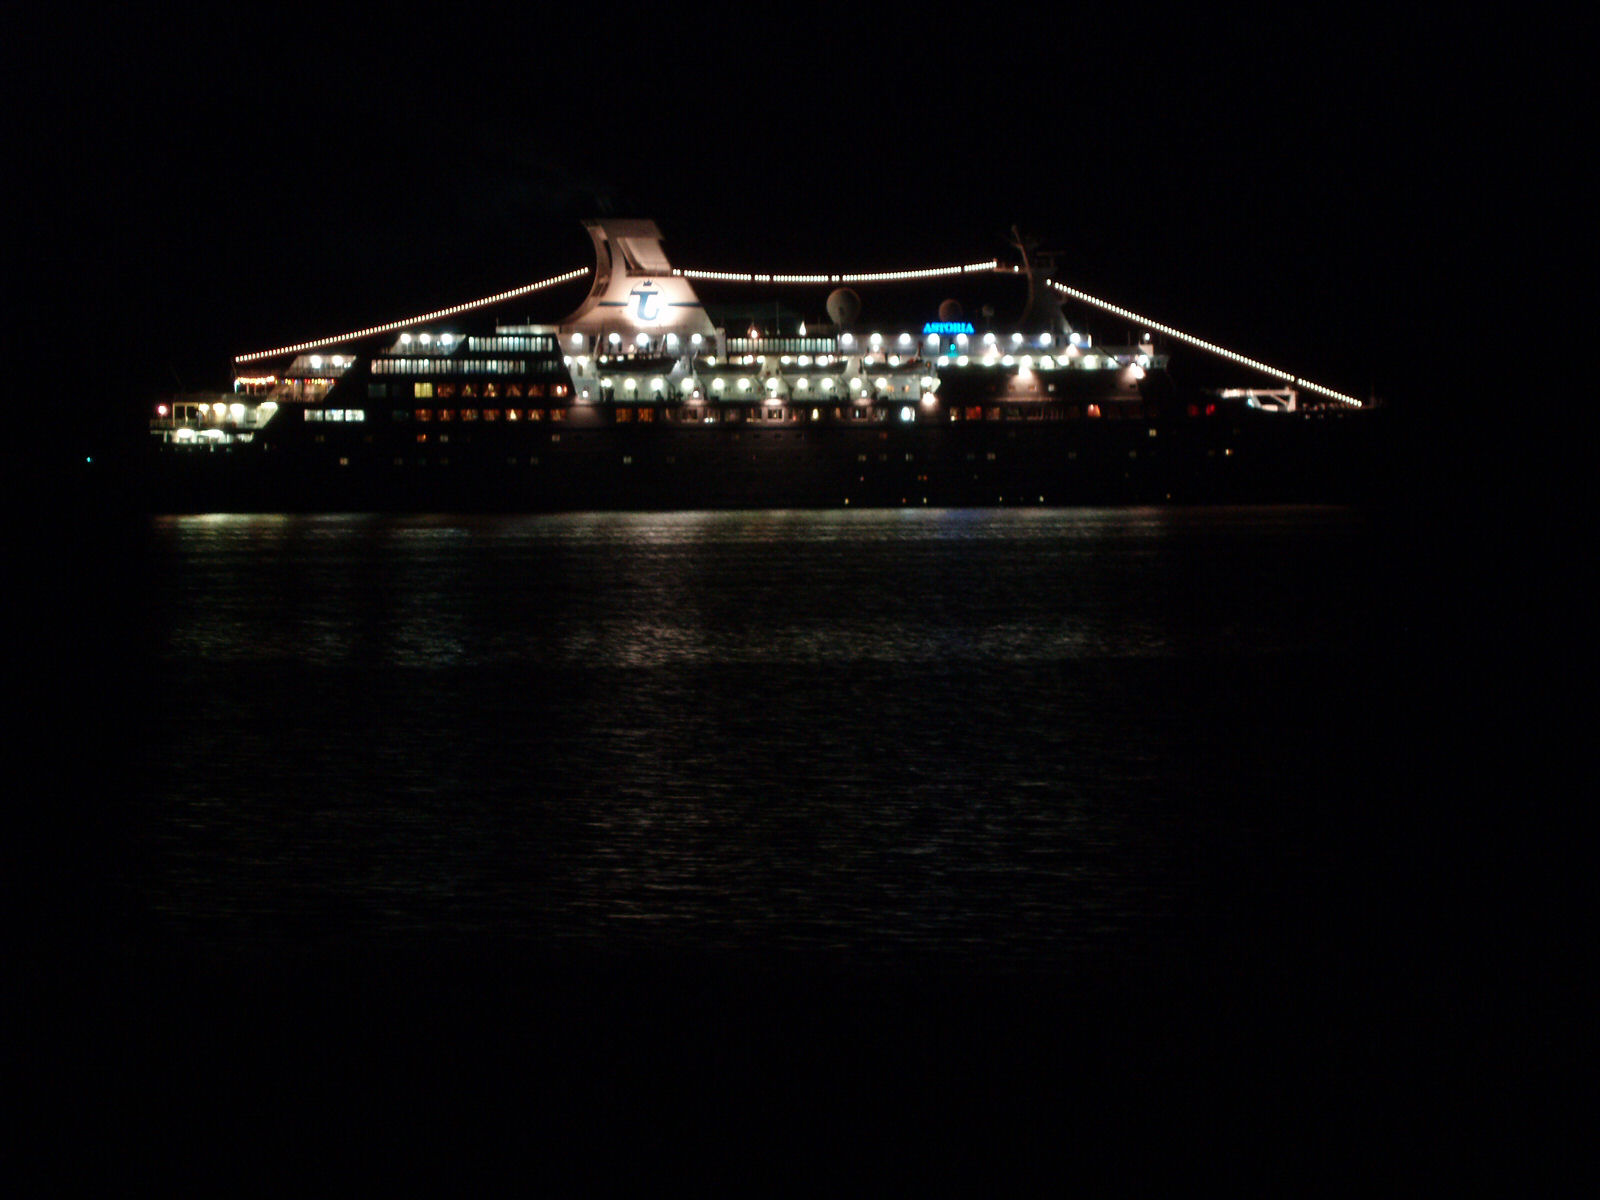 MV Astoria by night